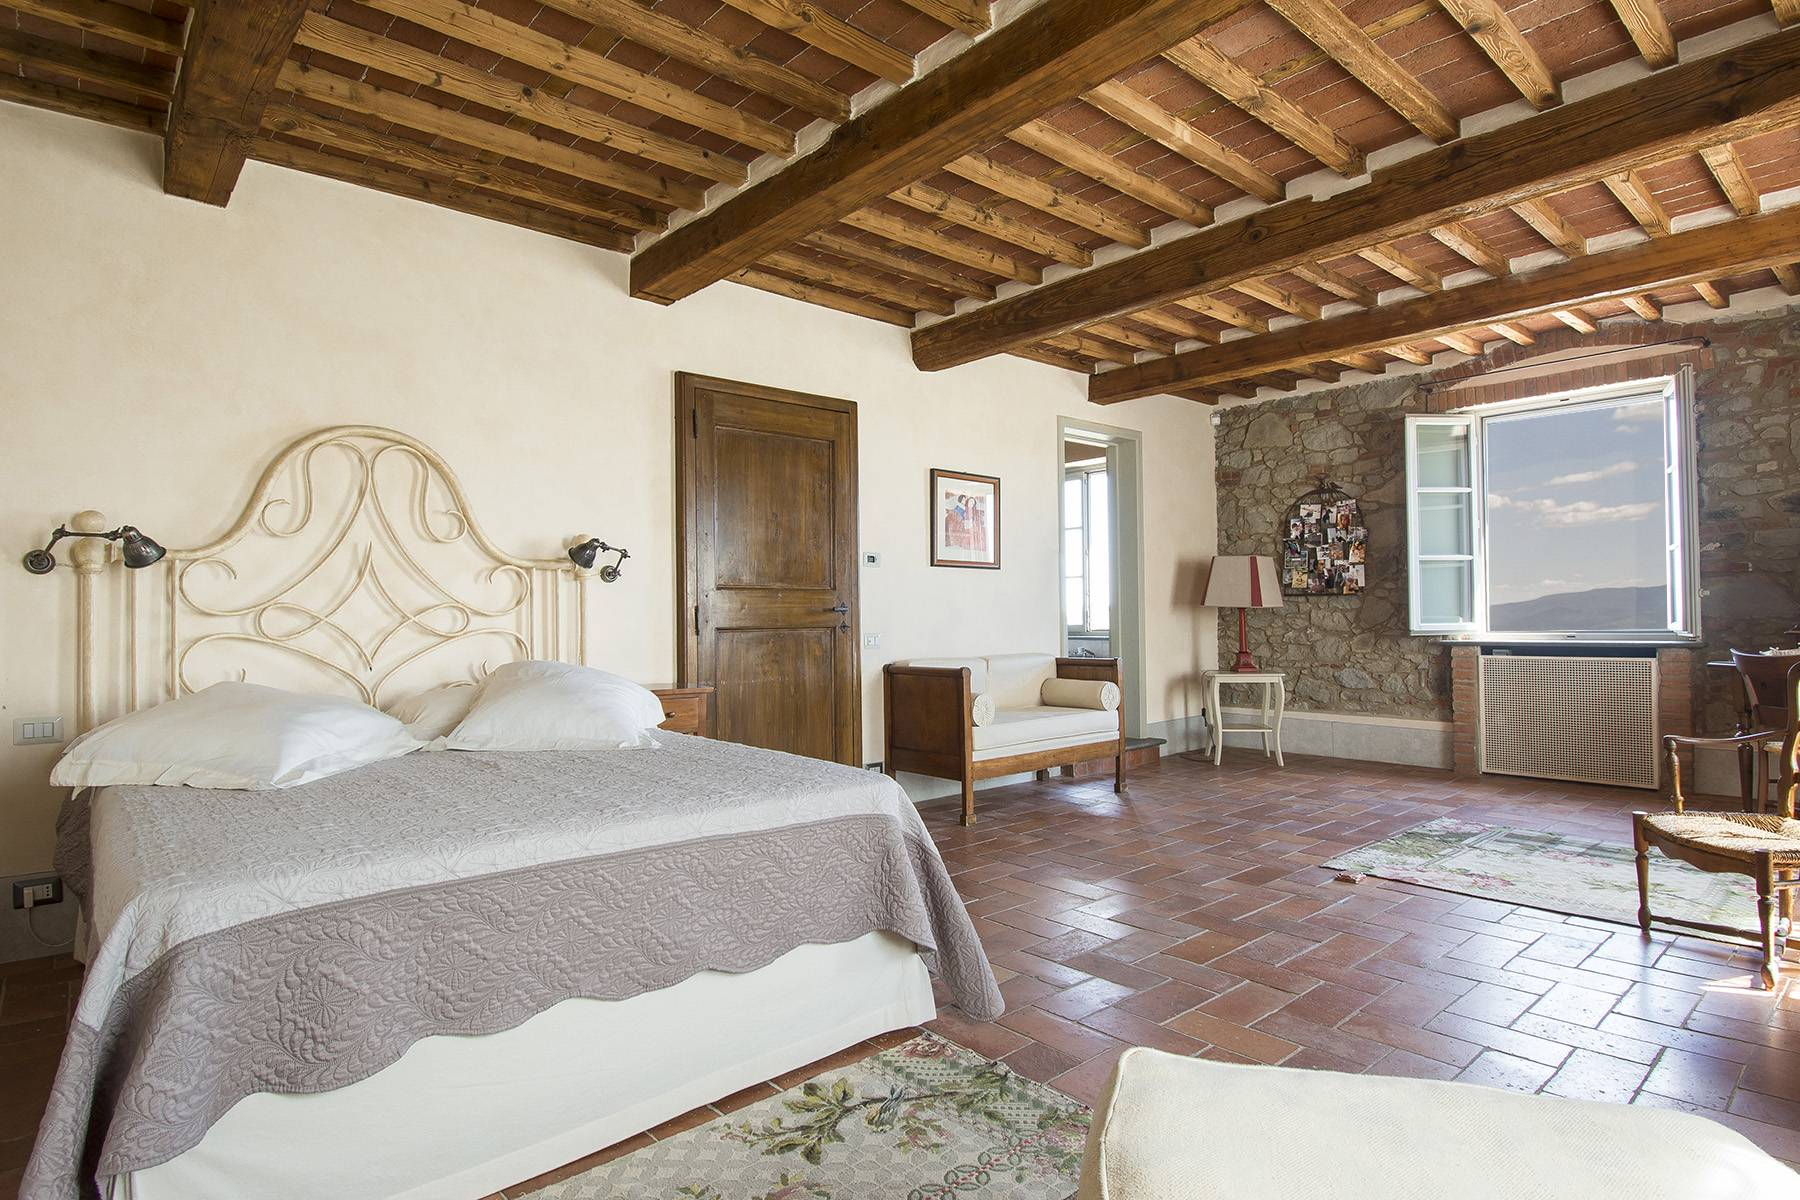 Stunning Country villa on the hills of Lucca with vineyard - 21